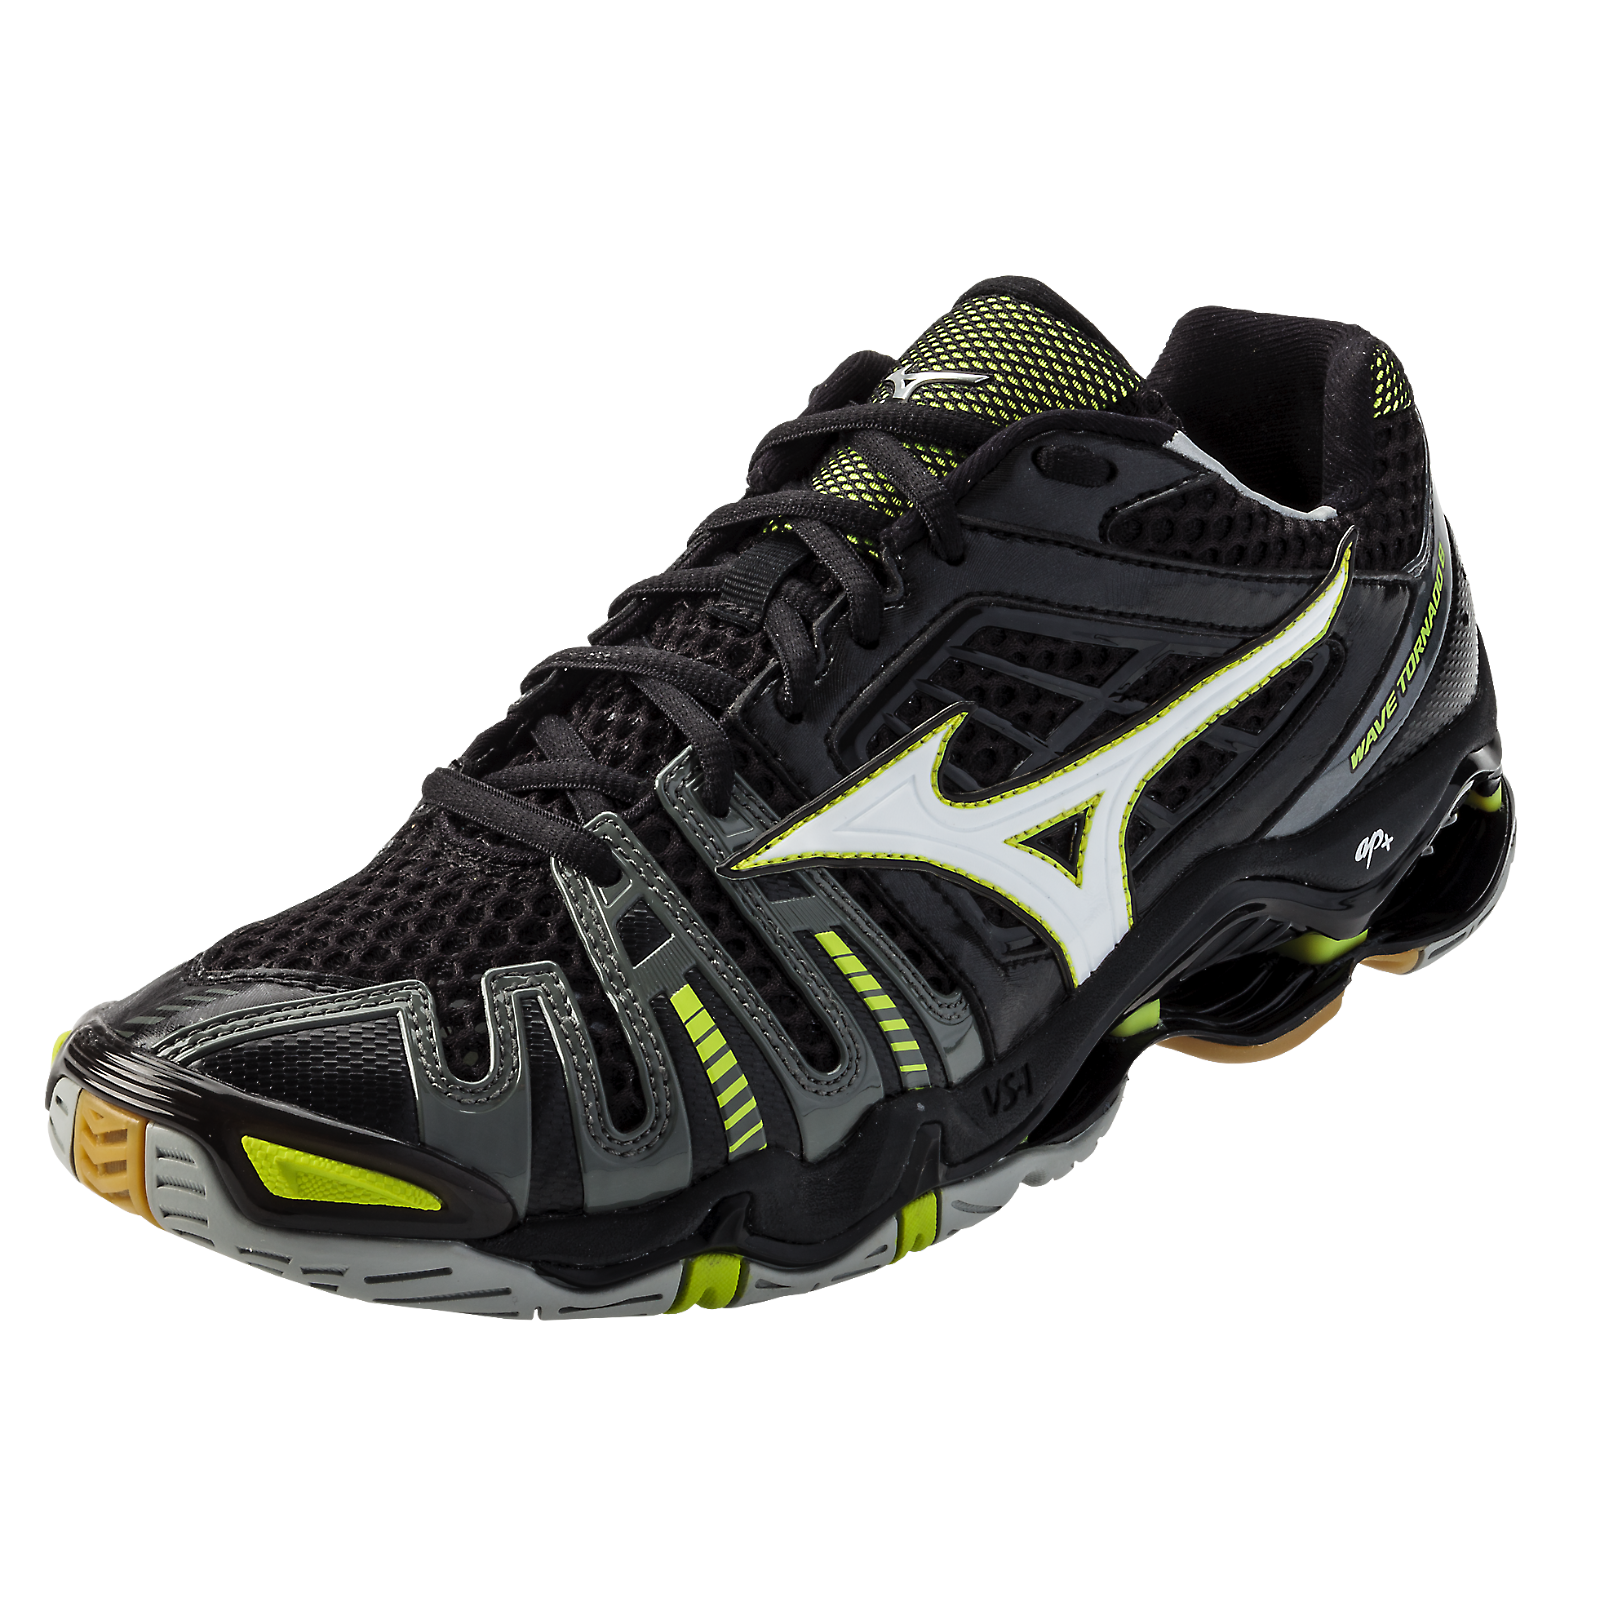 Mizuno Team Sports - Mizuno Men's Wave Tornado 8 Volleyball Shoes